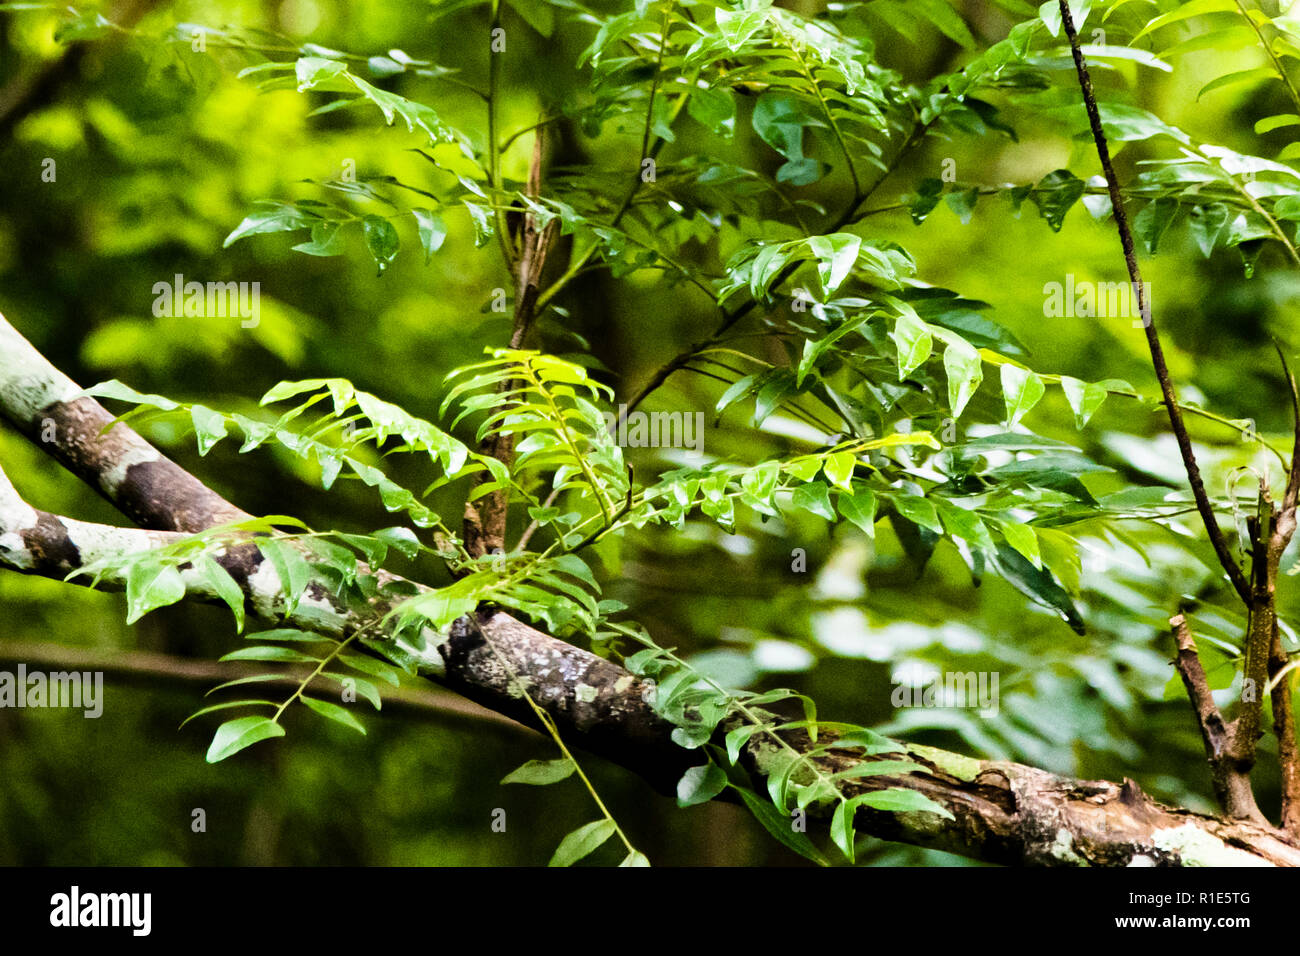 Leaves of curry tree in Sri Lanka - Stock Image